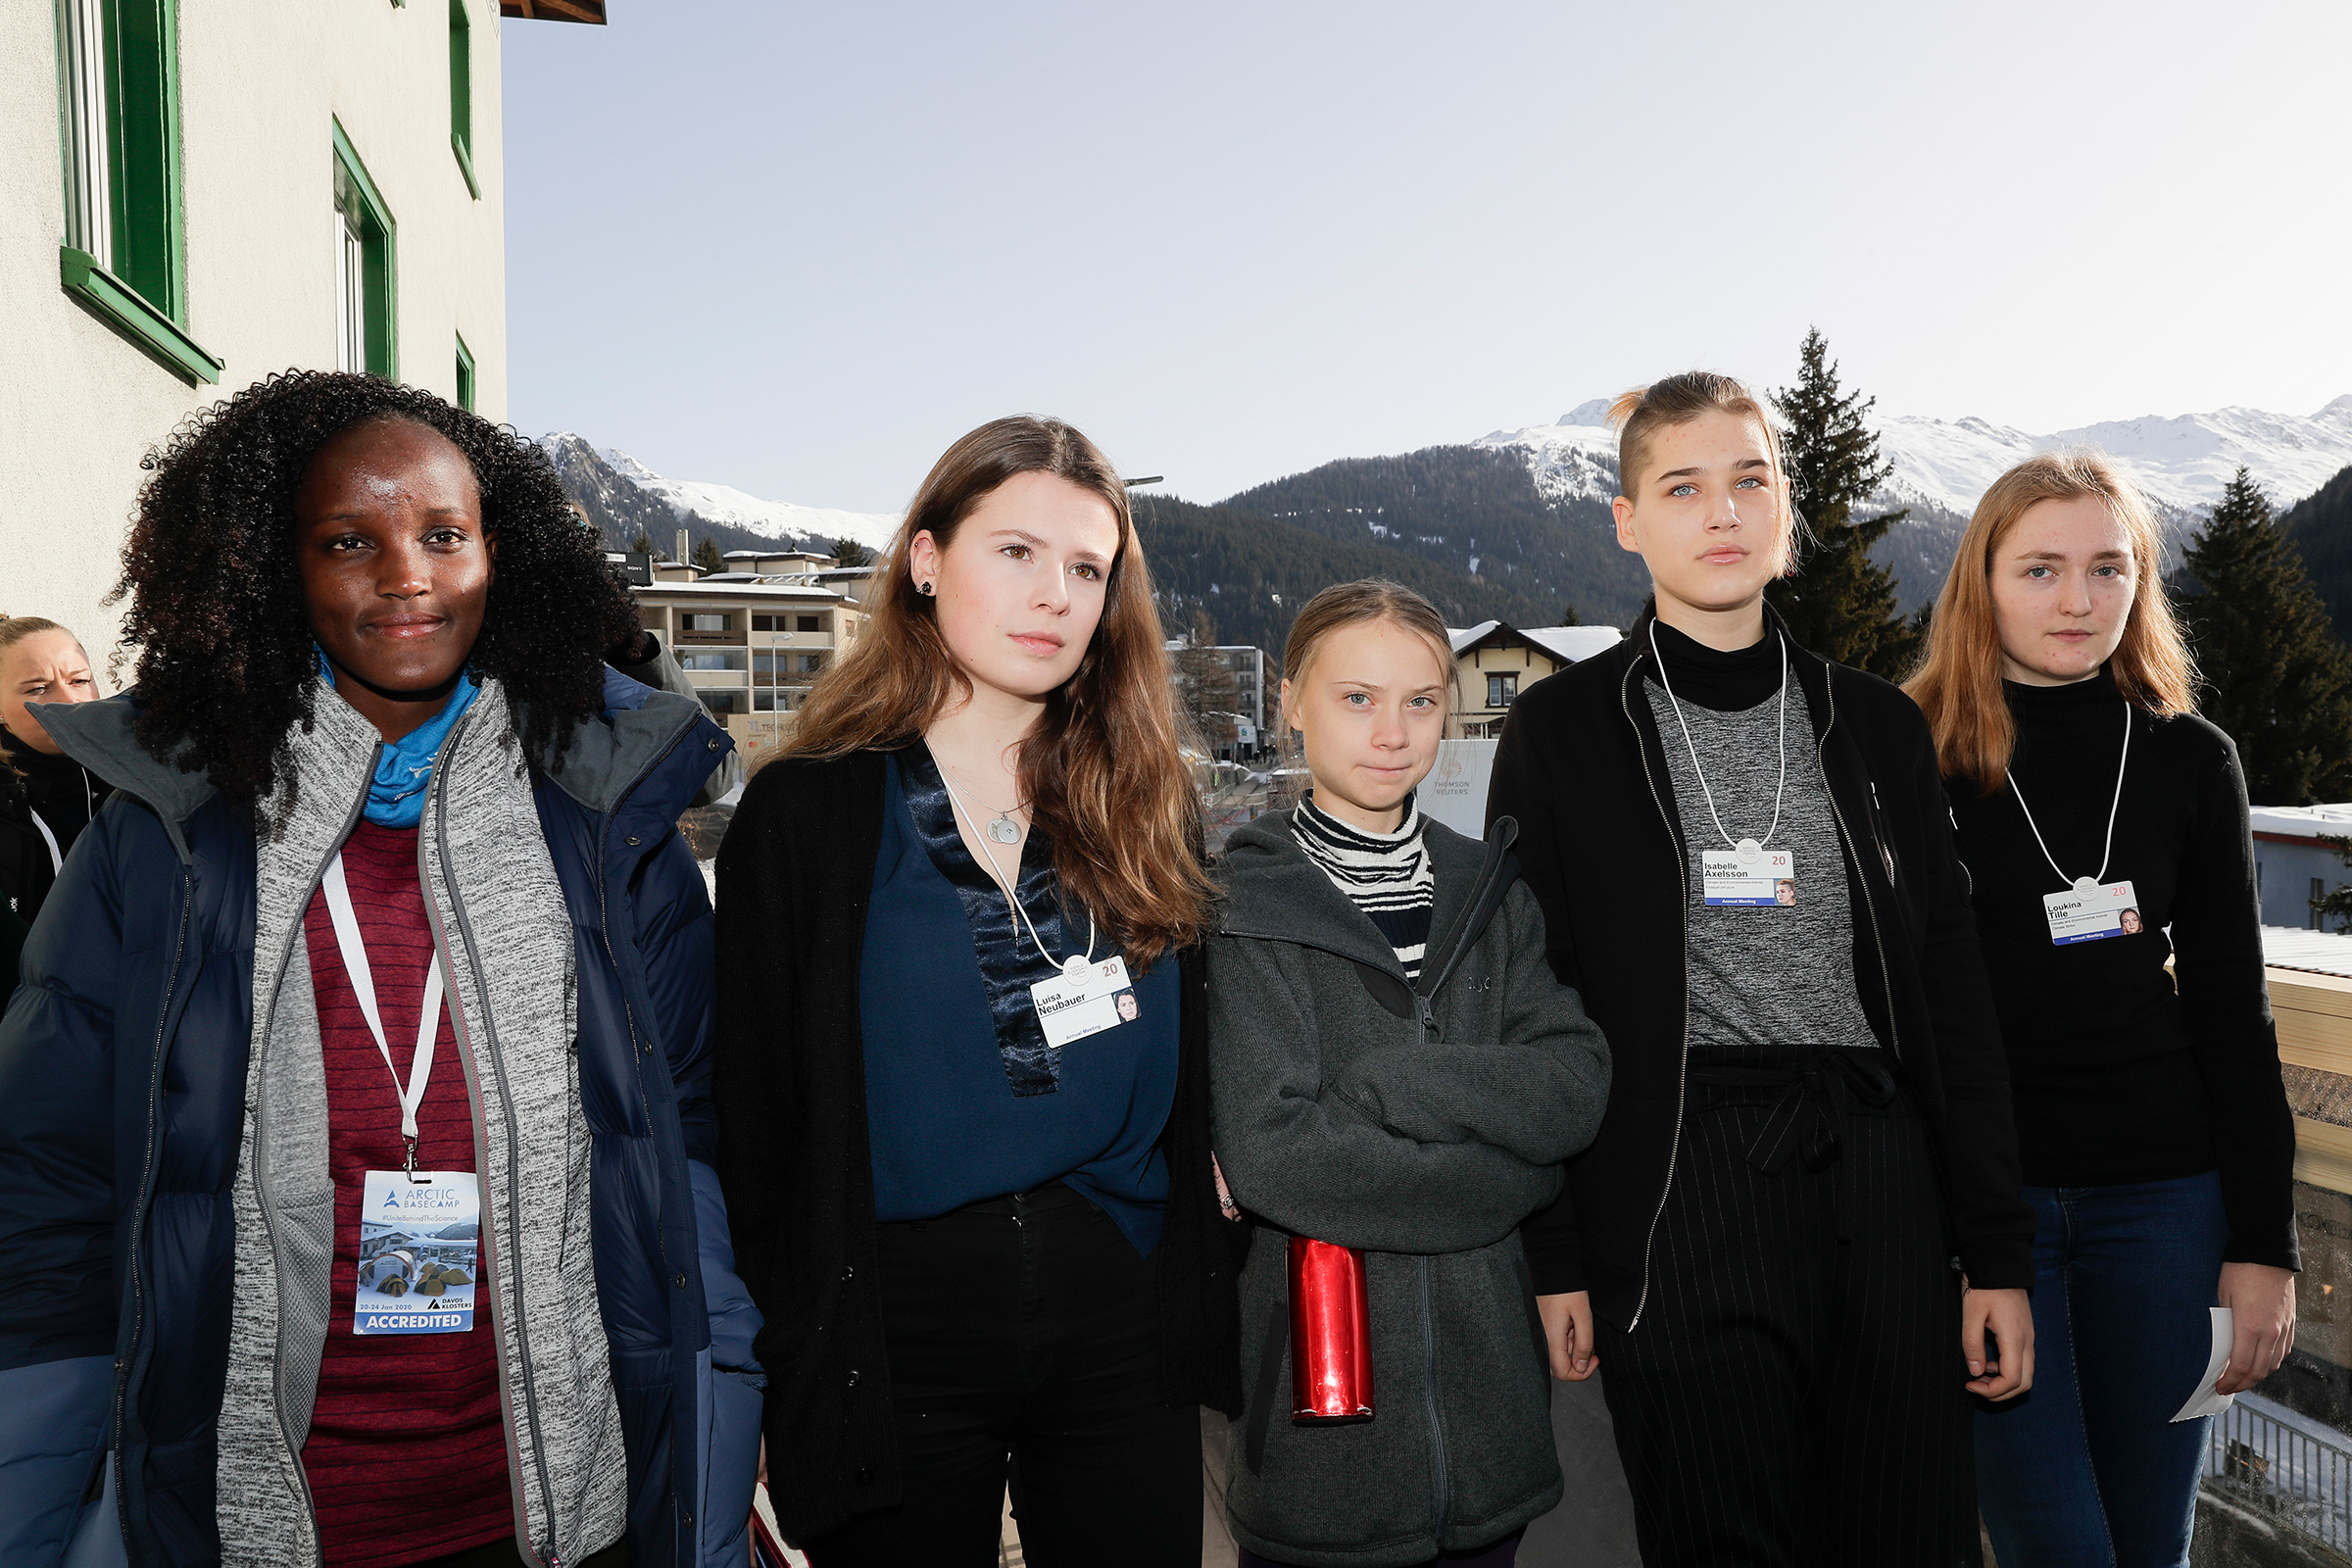 In January, the AP cropped Nakate out of a photo of young climate activists in Davos